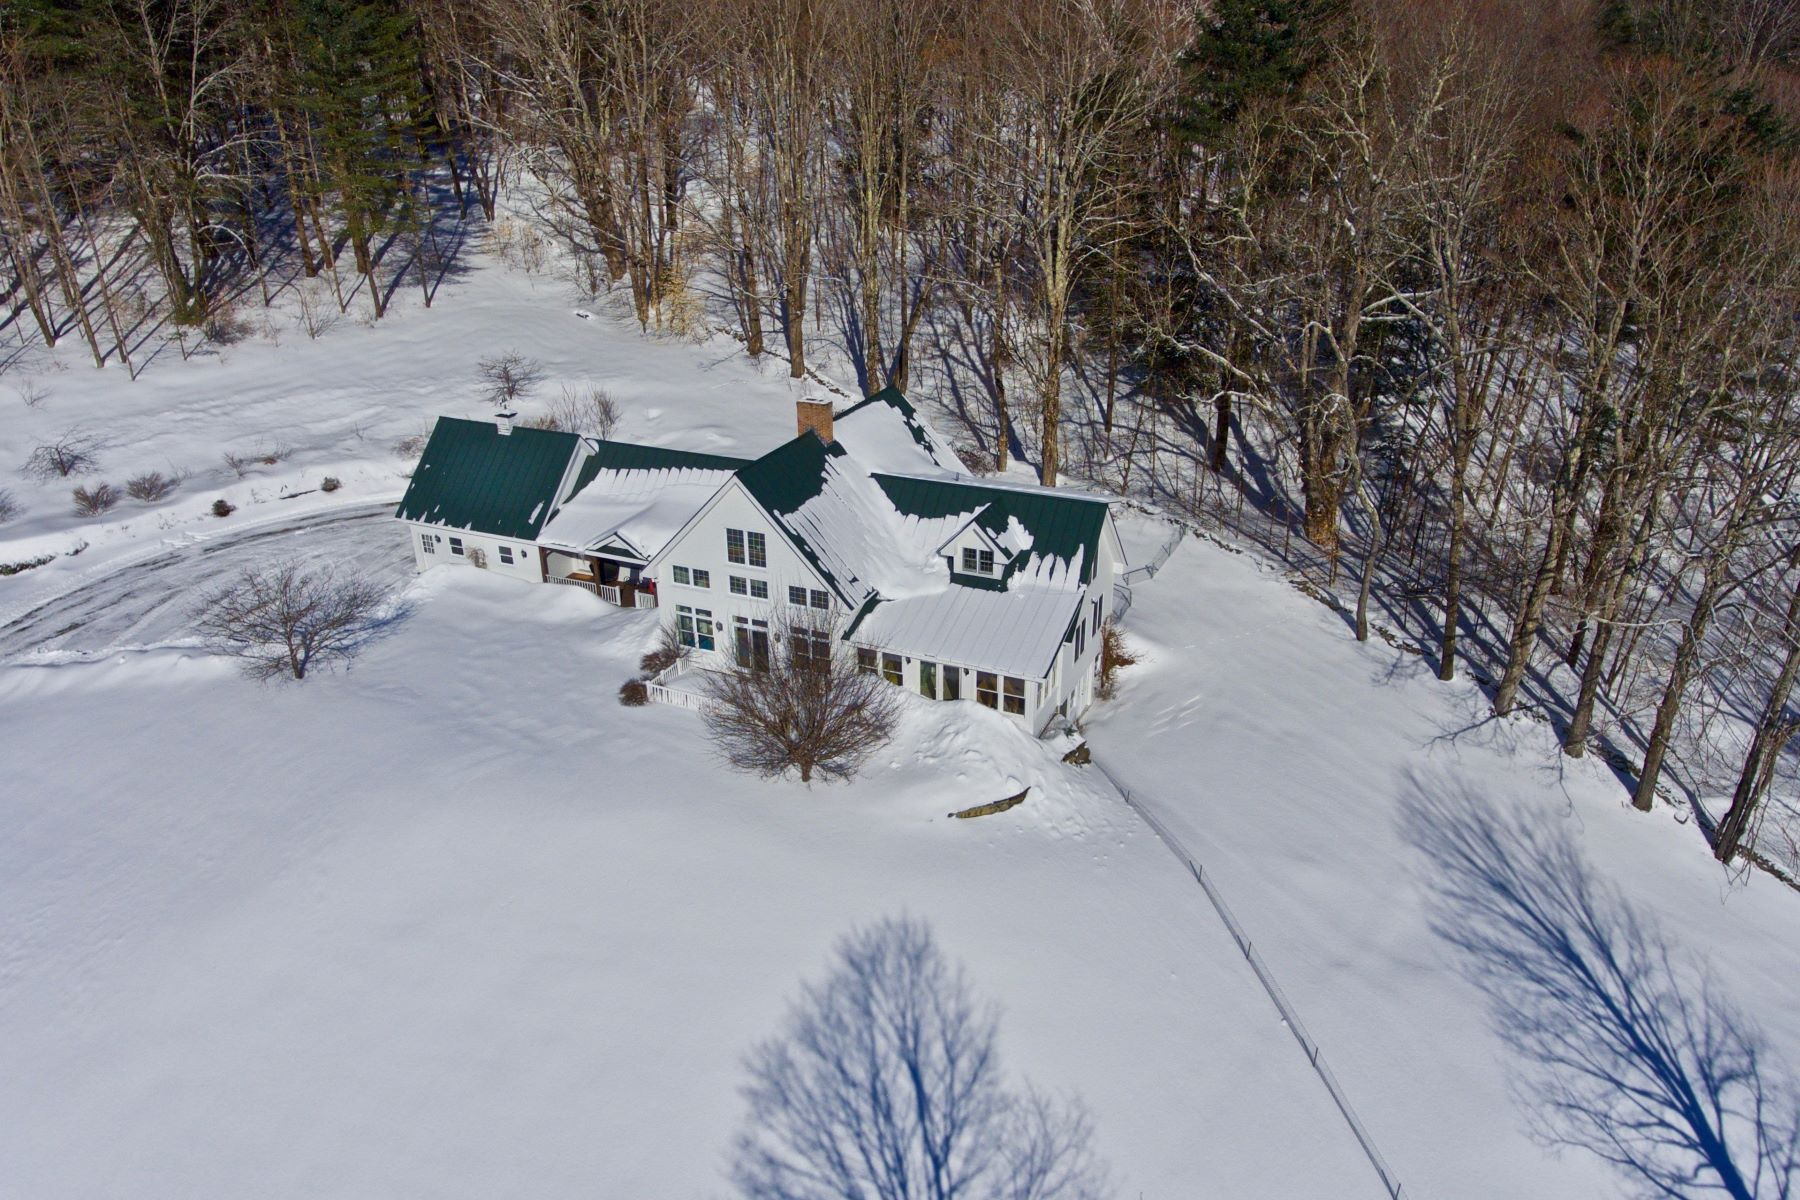 Single Family Home for Sale at 6790 Broad Brook Road, Barnard 6790 Broad Brook Rd Barnard, Vermont 05031 United States